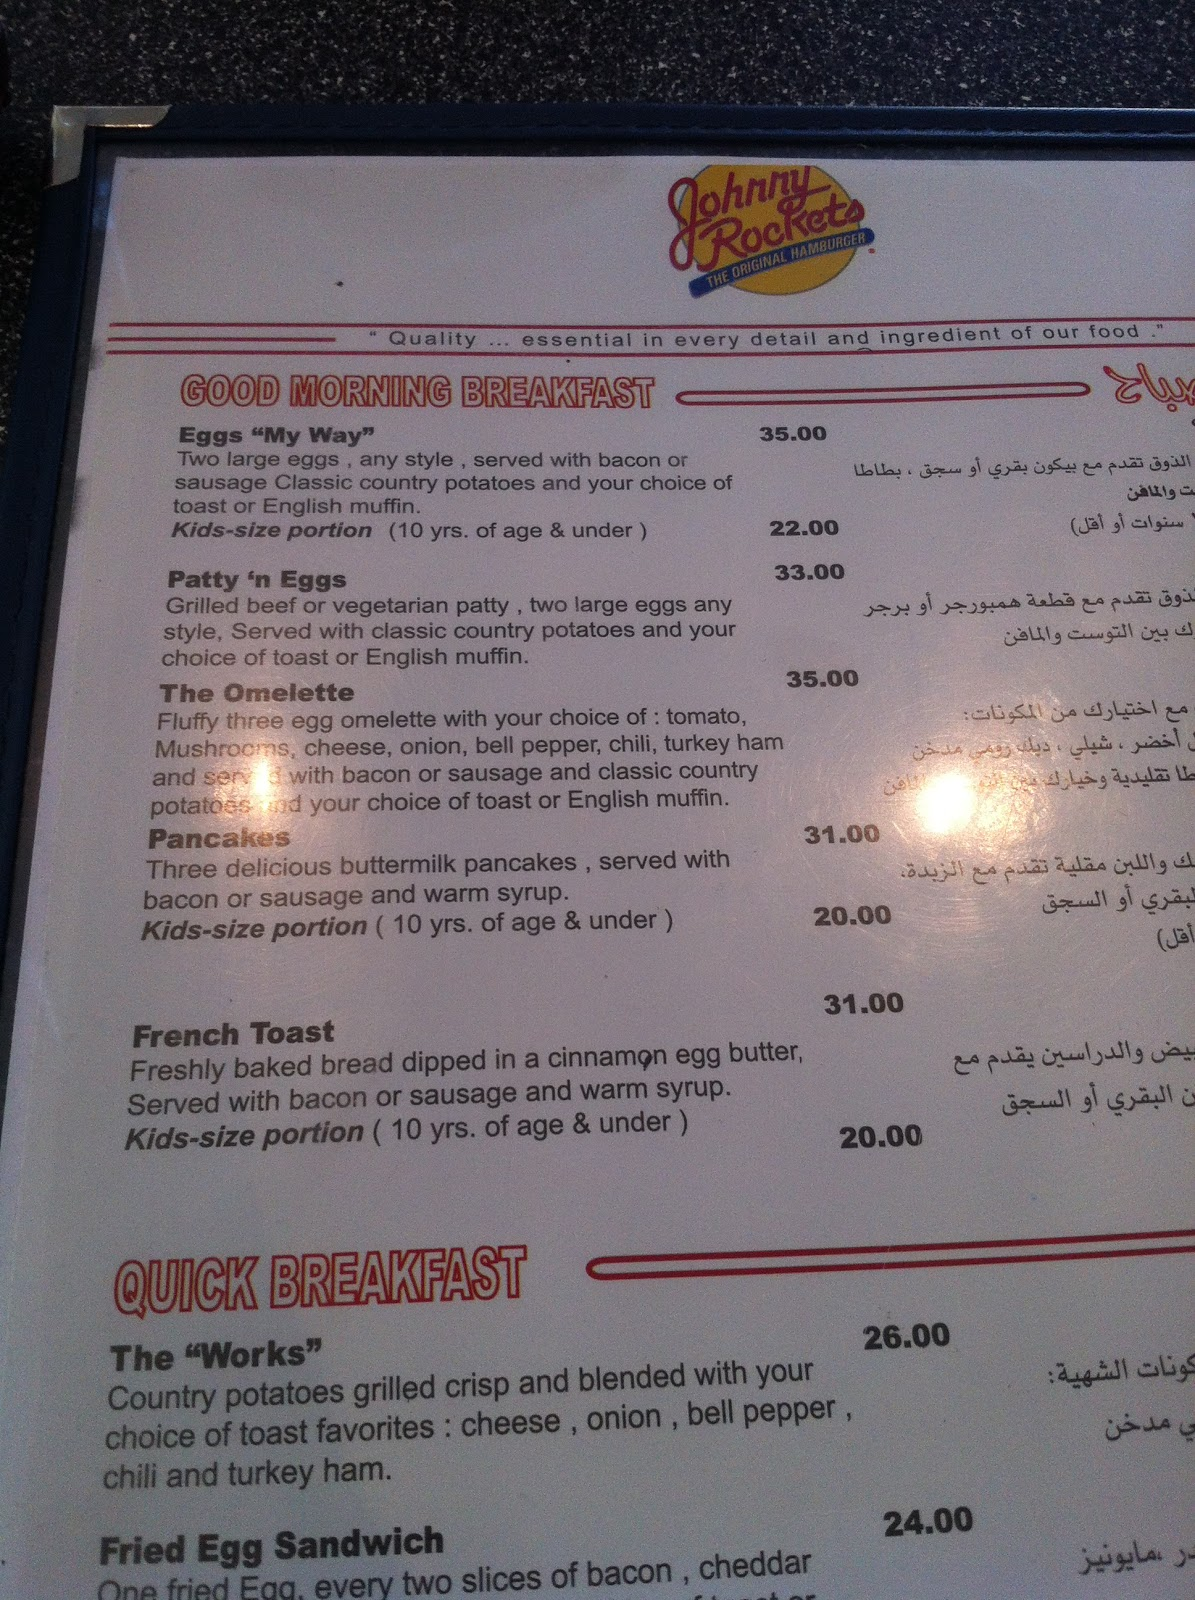 TURKNOY: Doha Breakfast: Johnny Rockets!